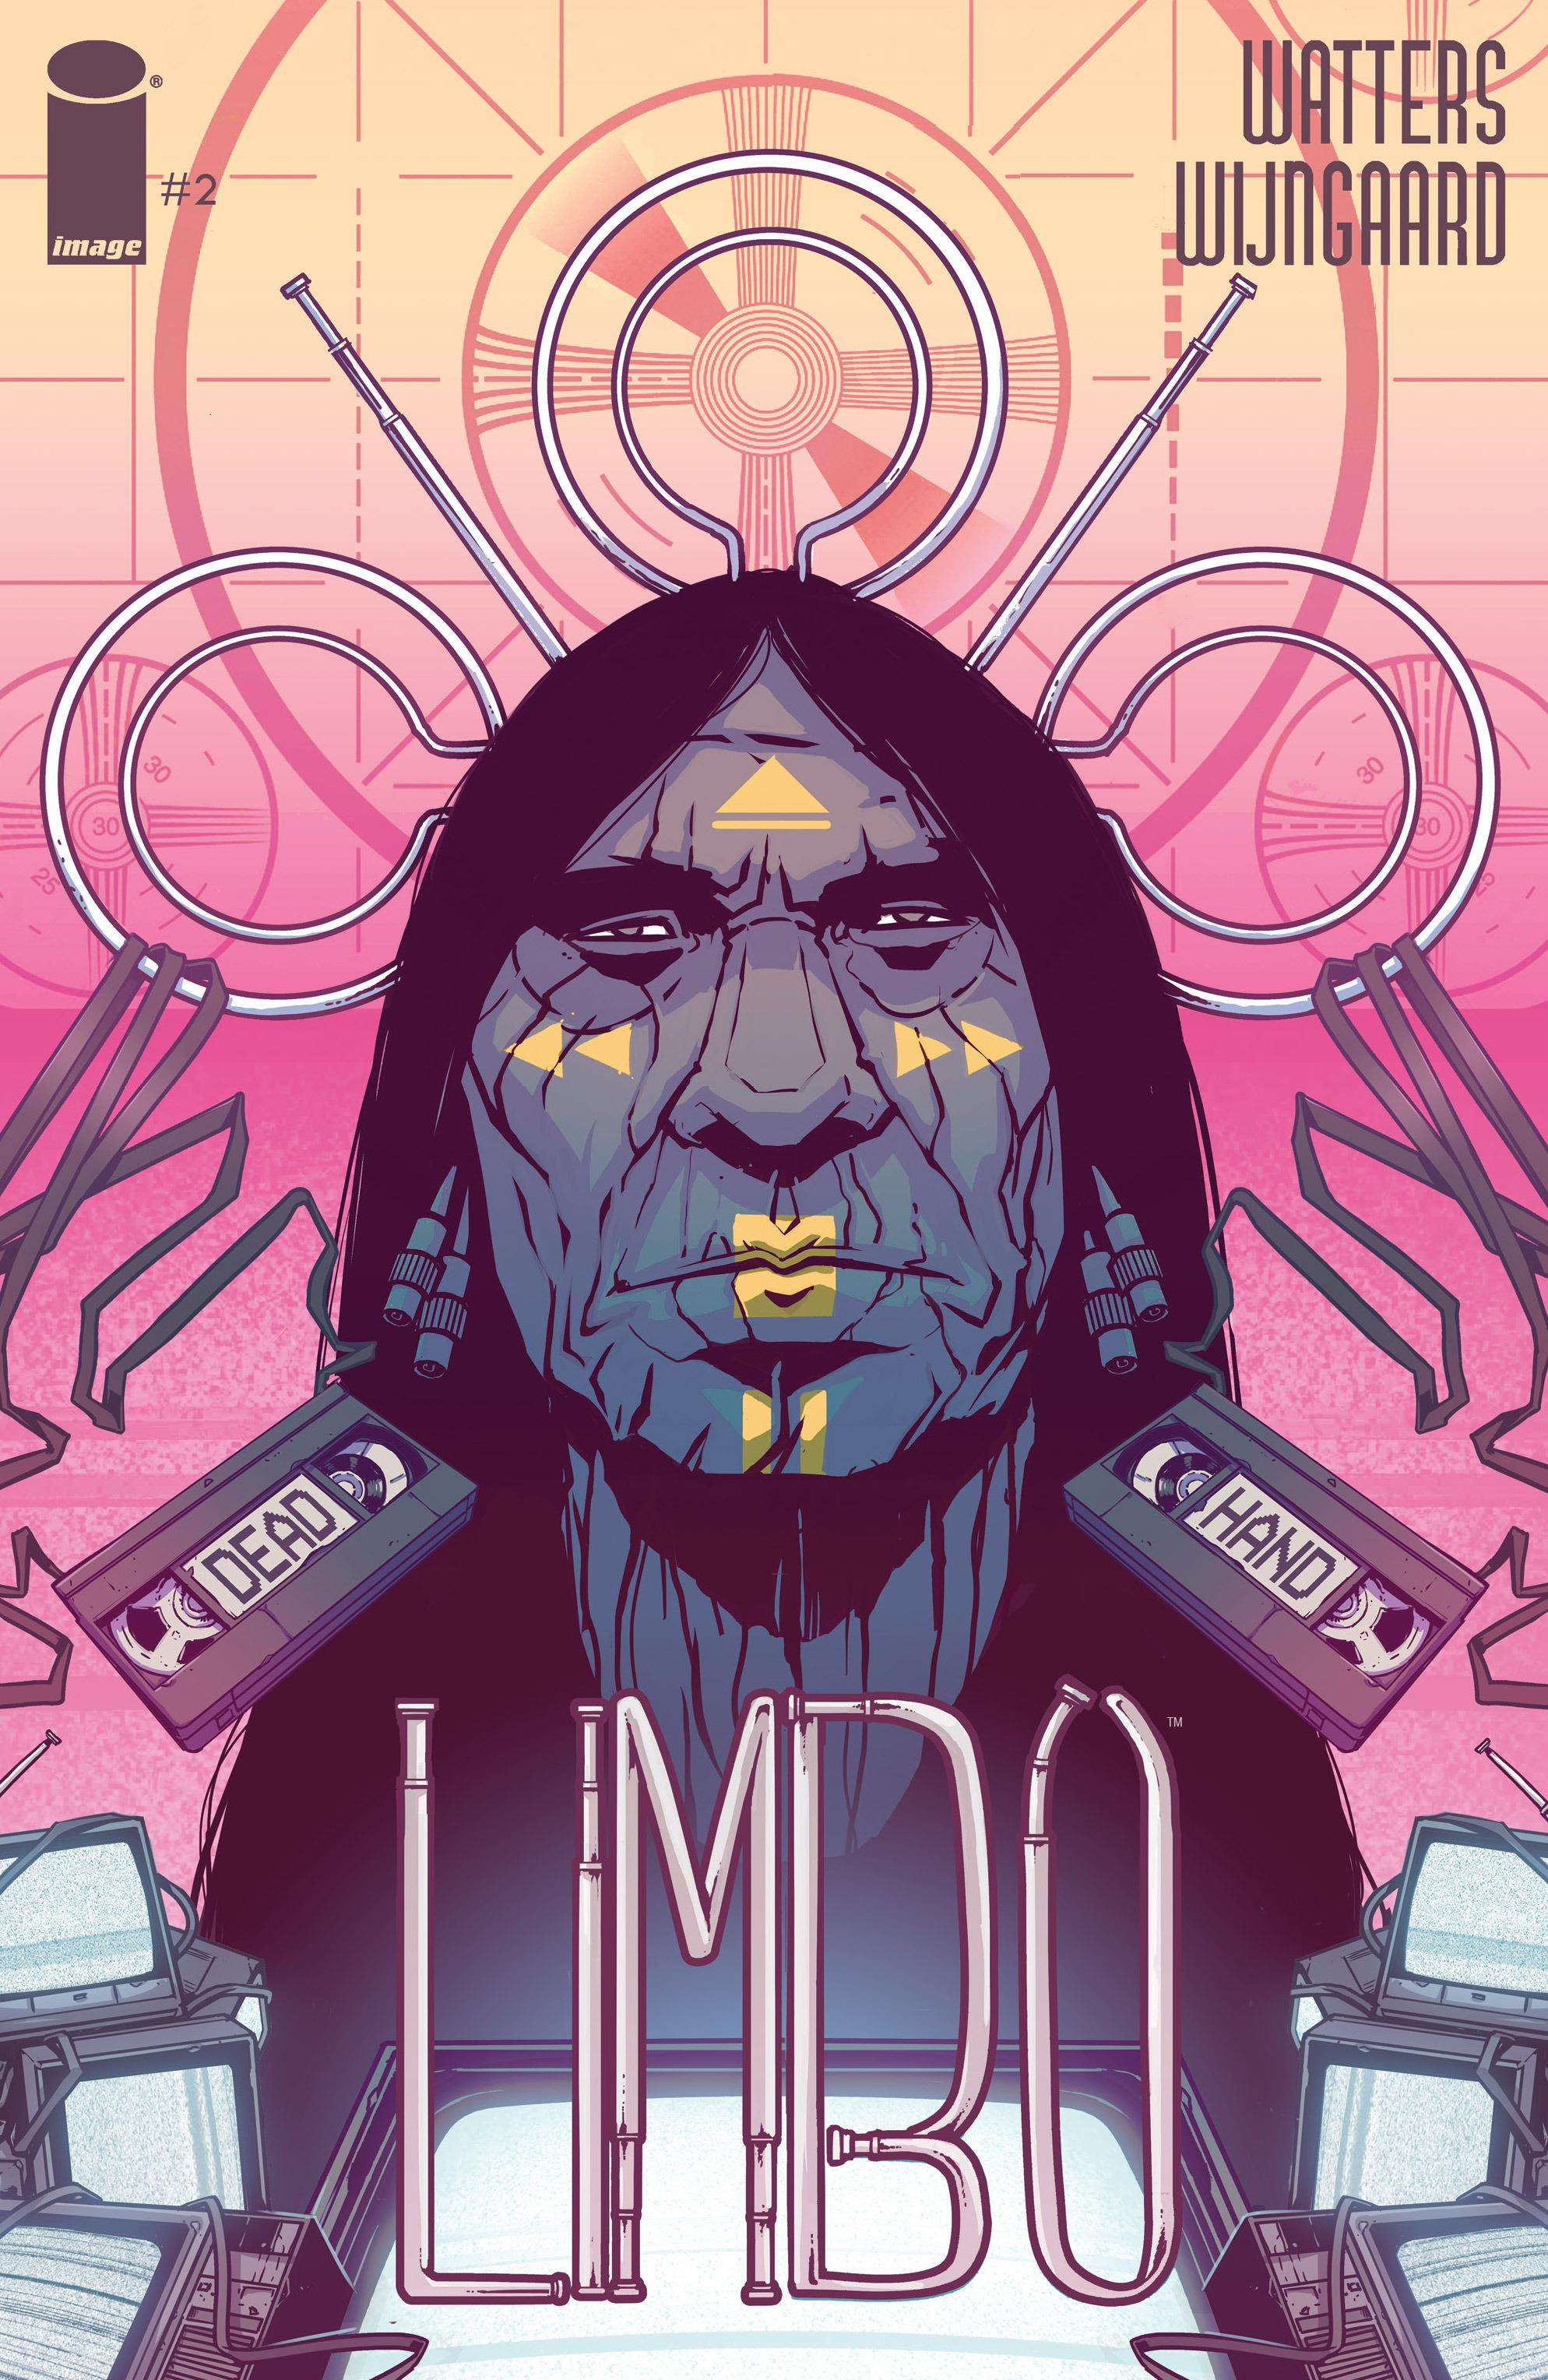 COMIC REVIEW: Limbo #2 - The Man in the Machine